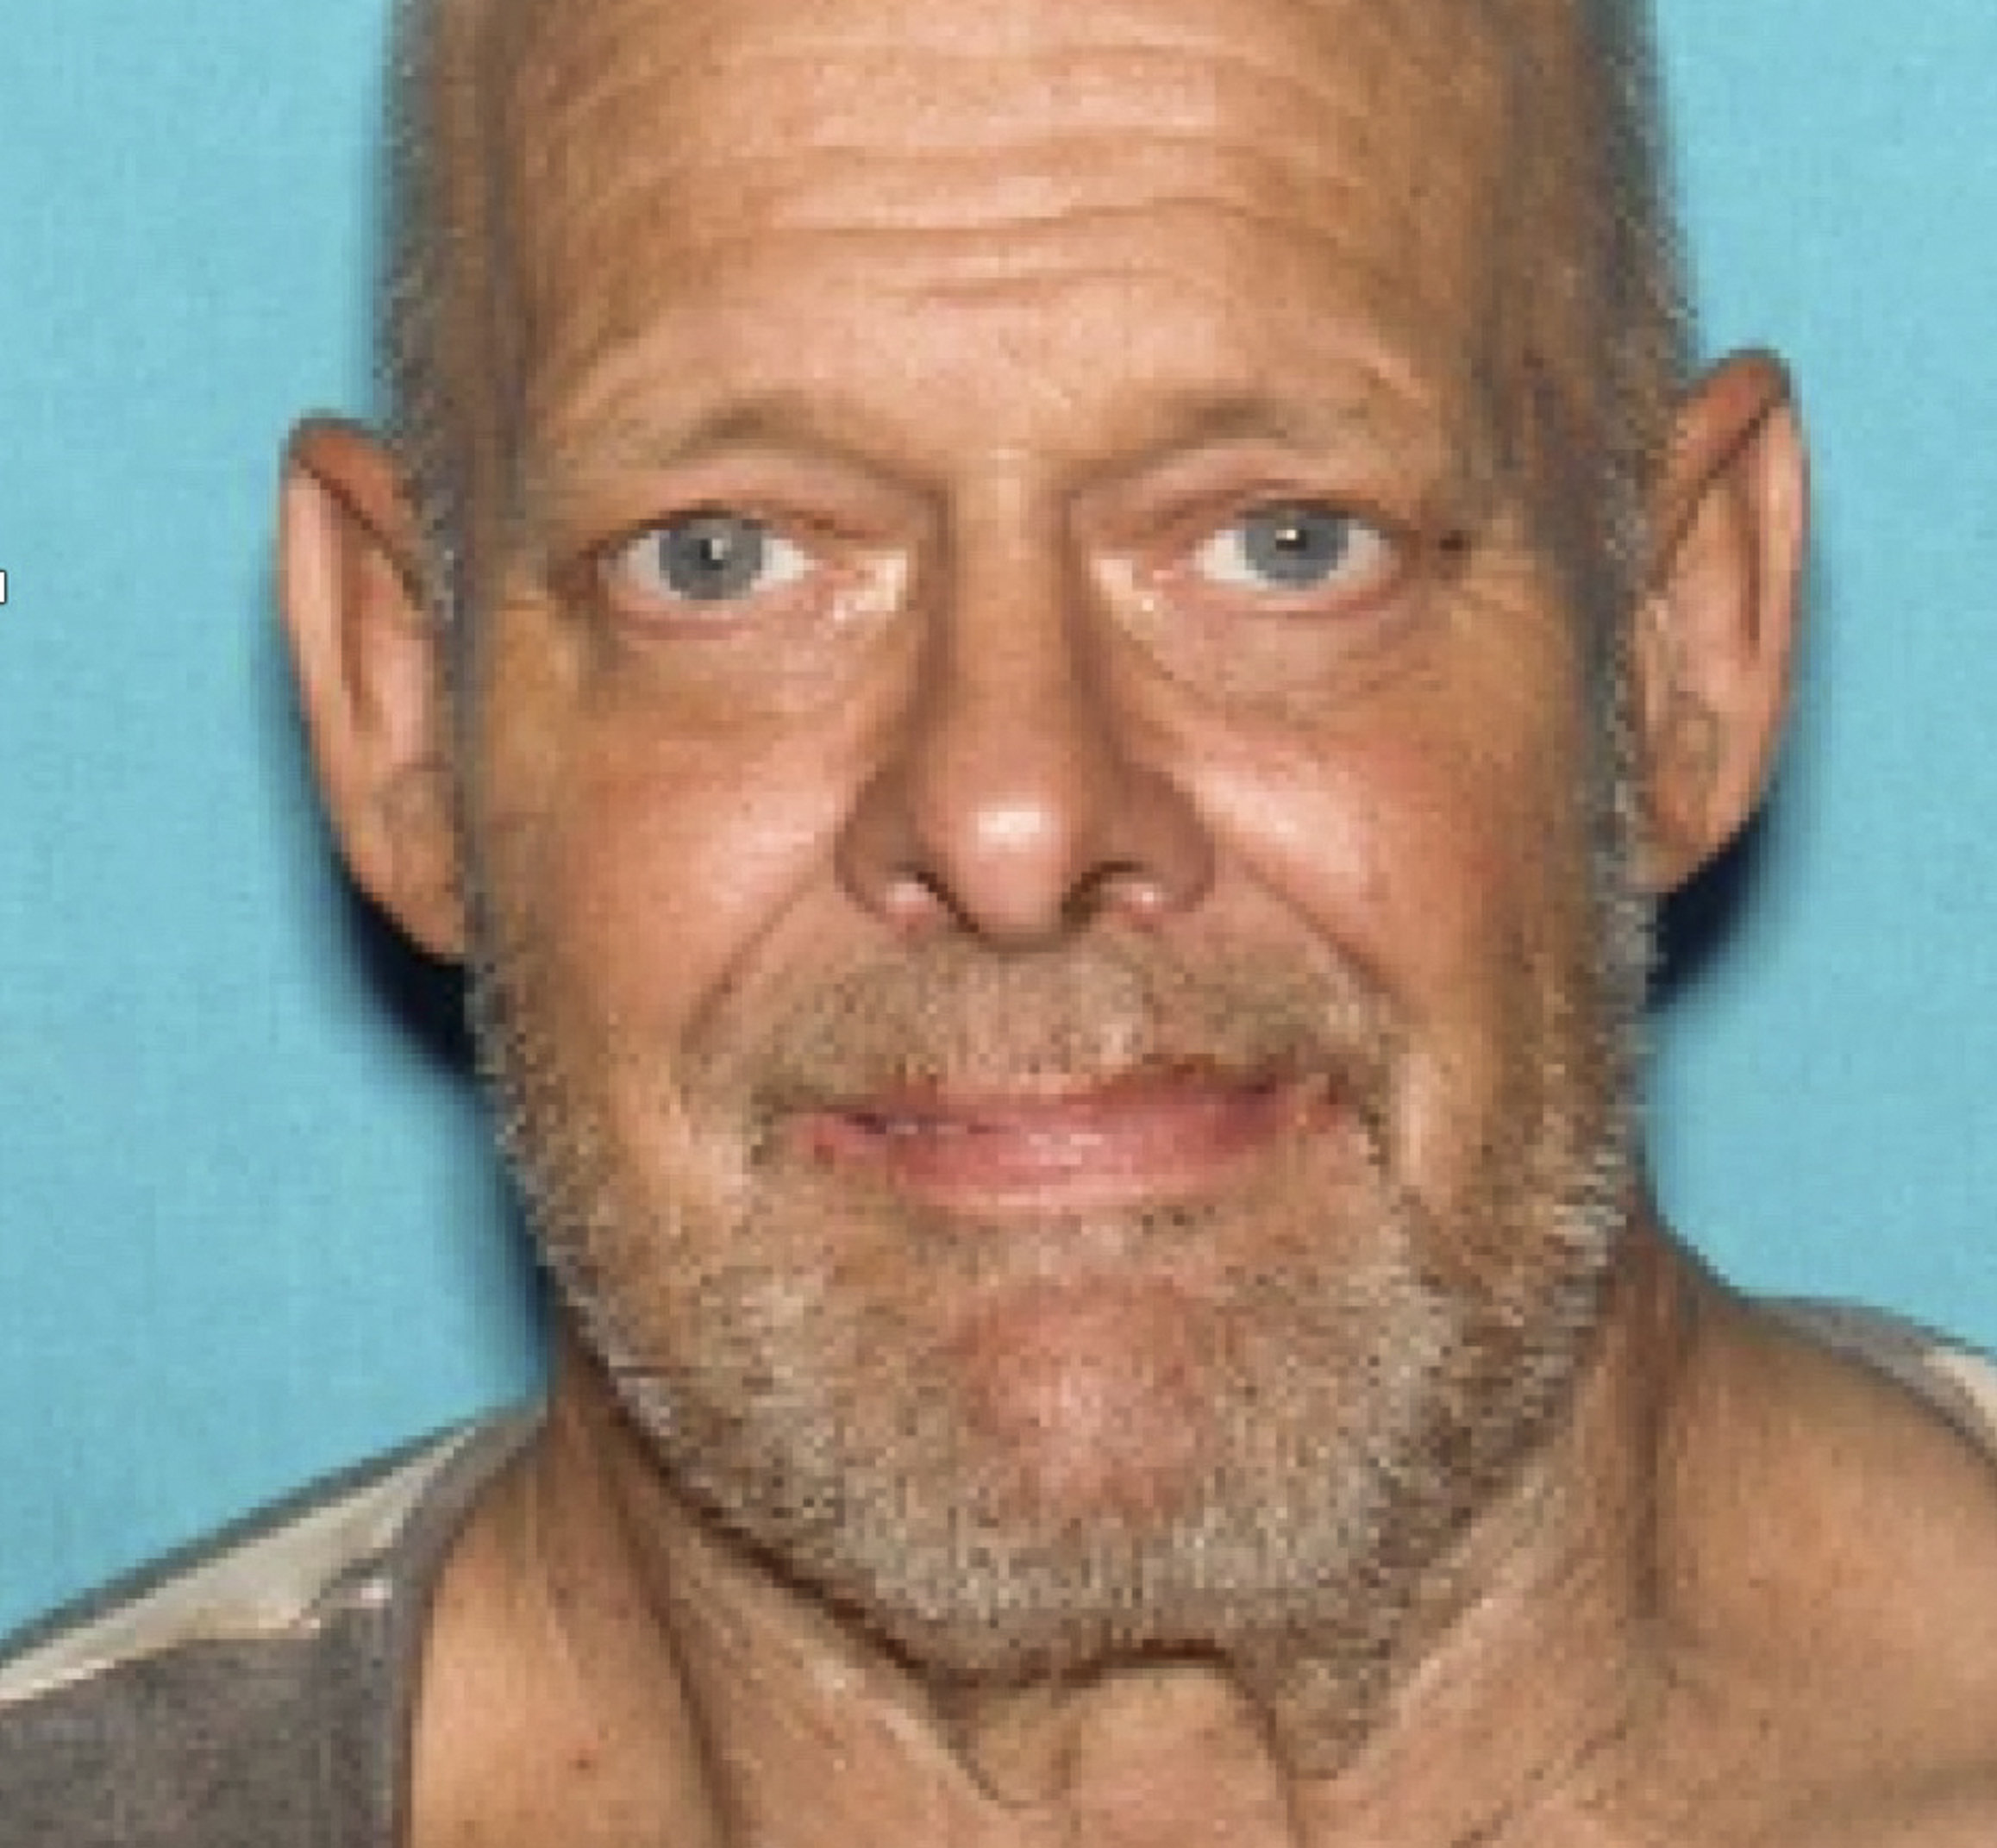 Las Vegas Shooter's Laptop Was Missing Hard Drive